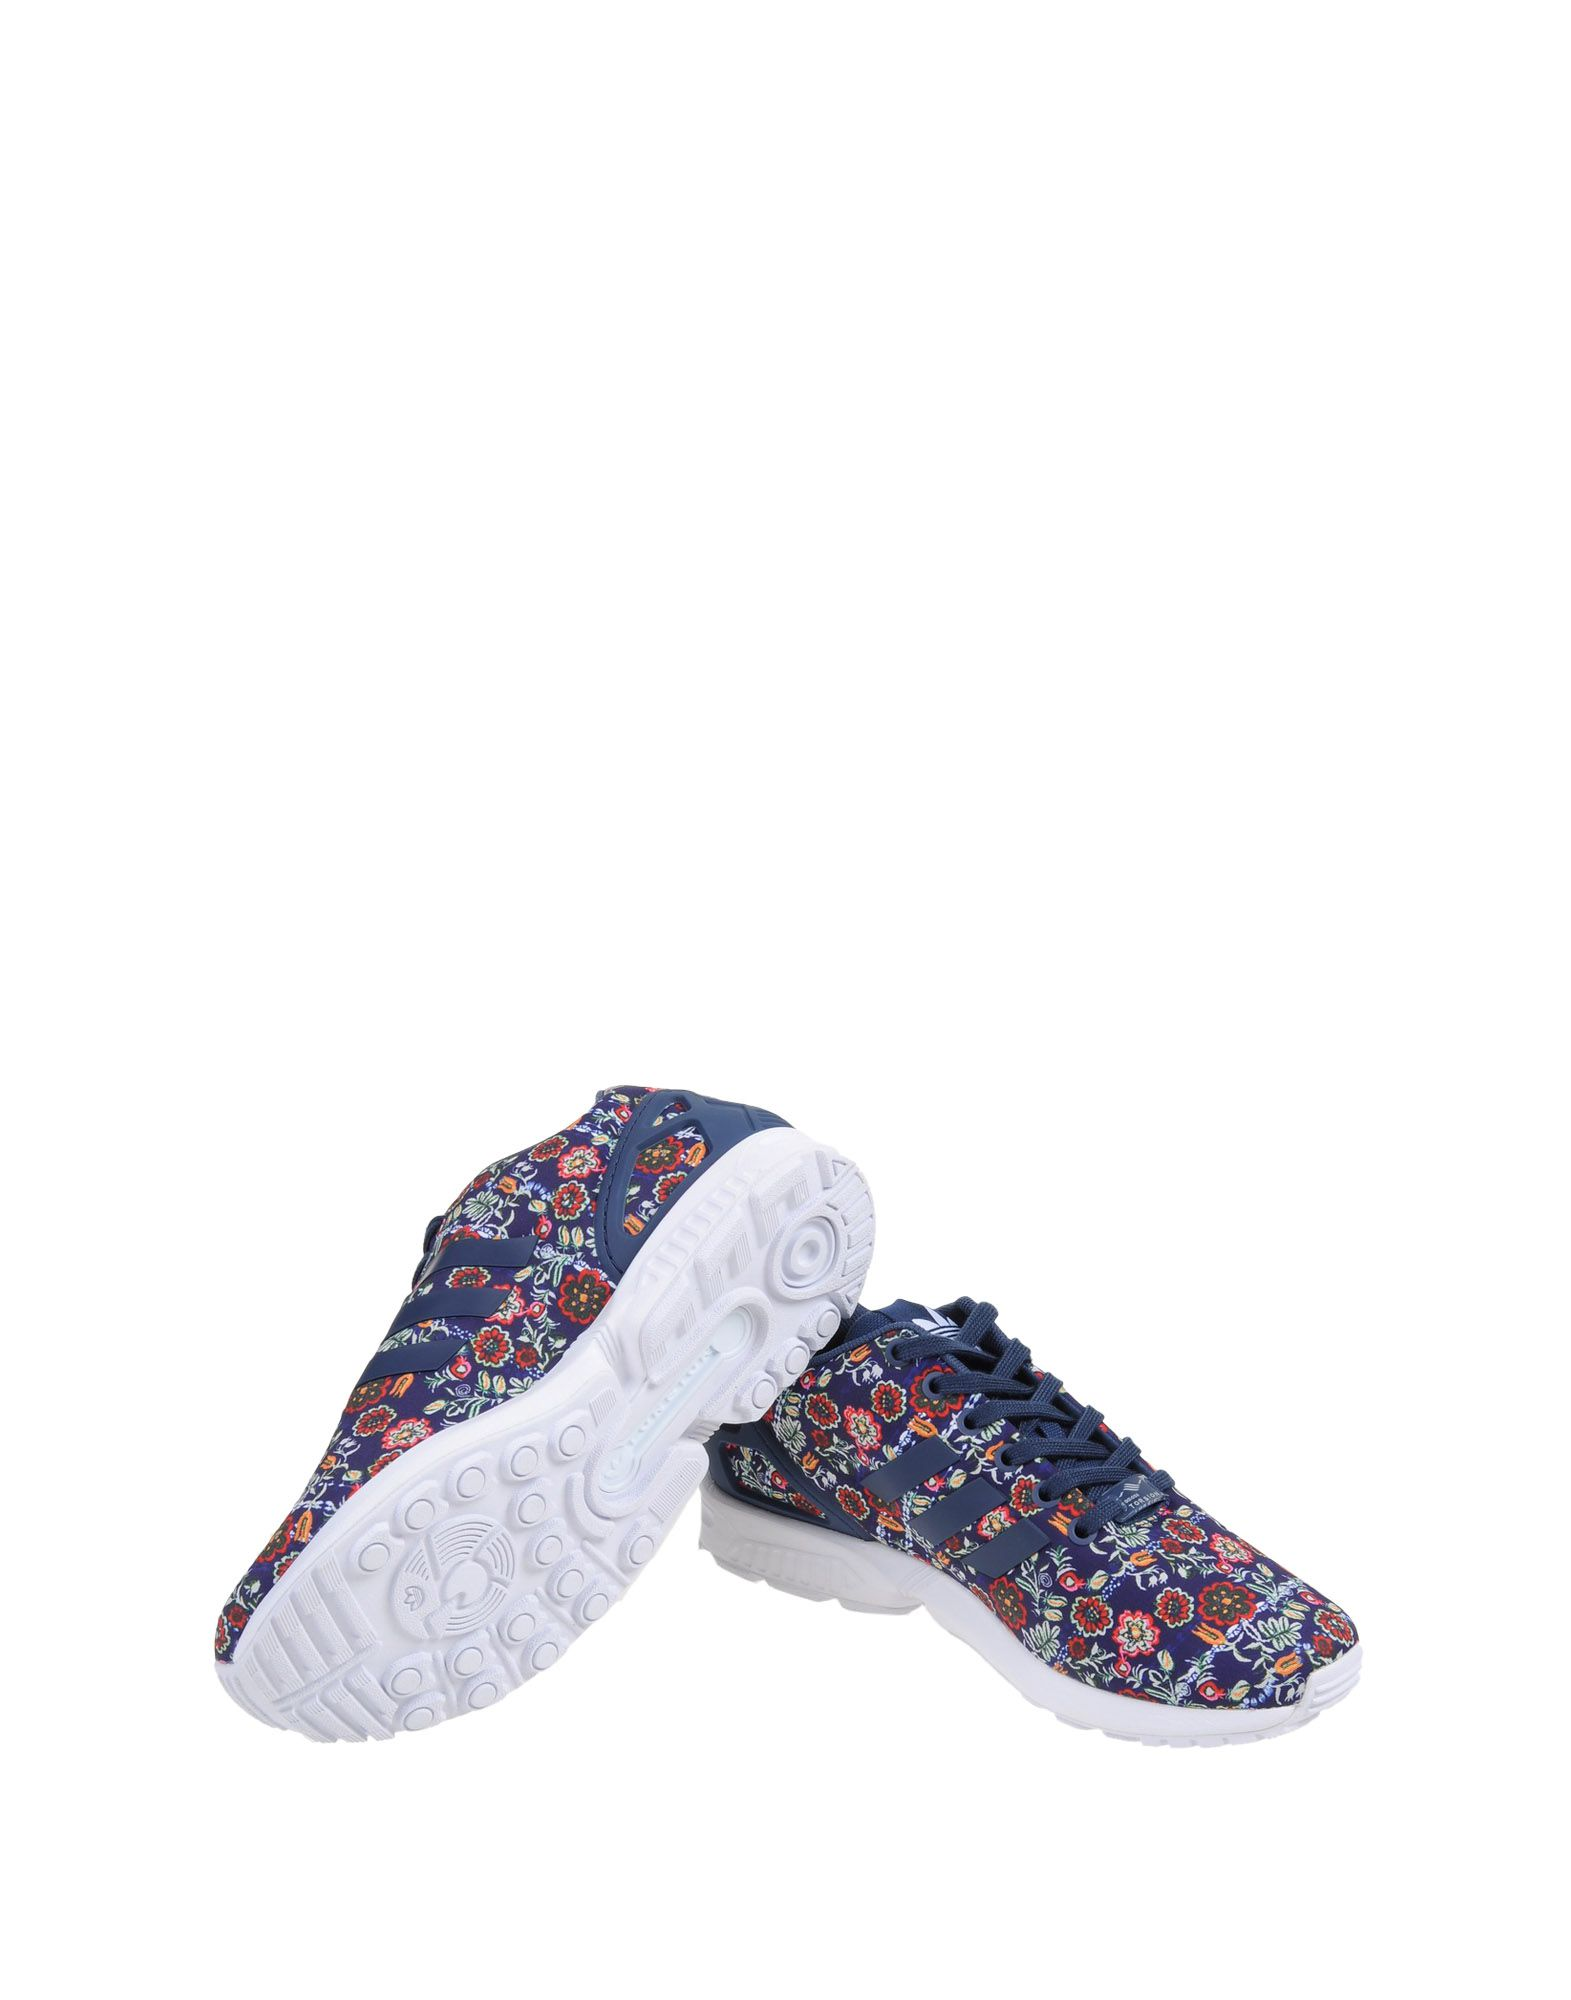 Sneakers Adidas Originals Zx Flux W - Femme - Sneakers Adidas Originals sur